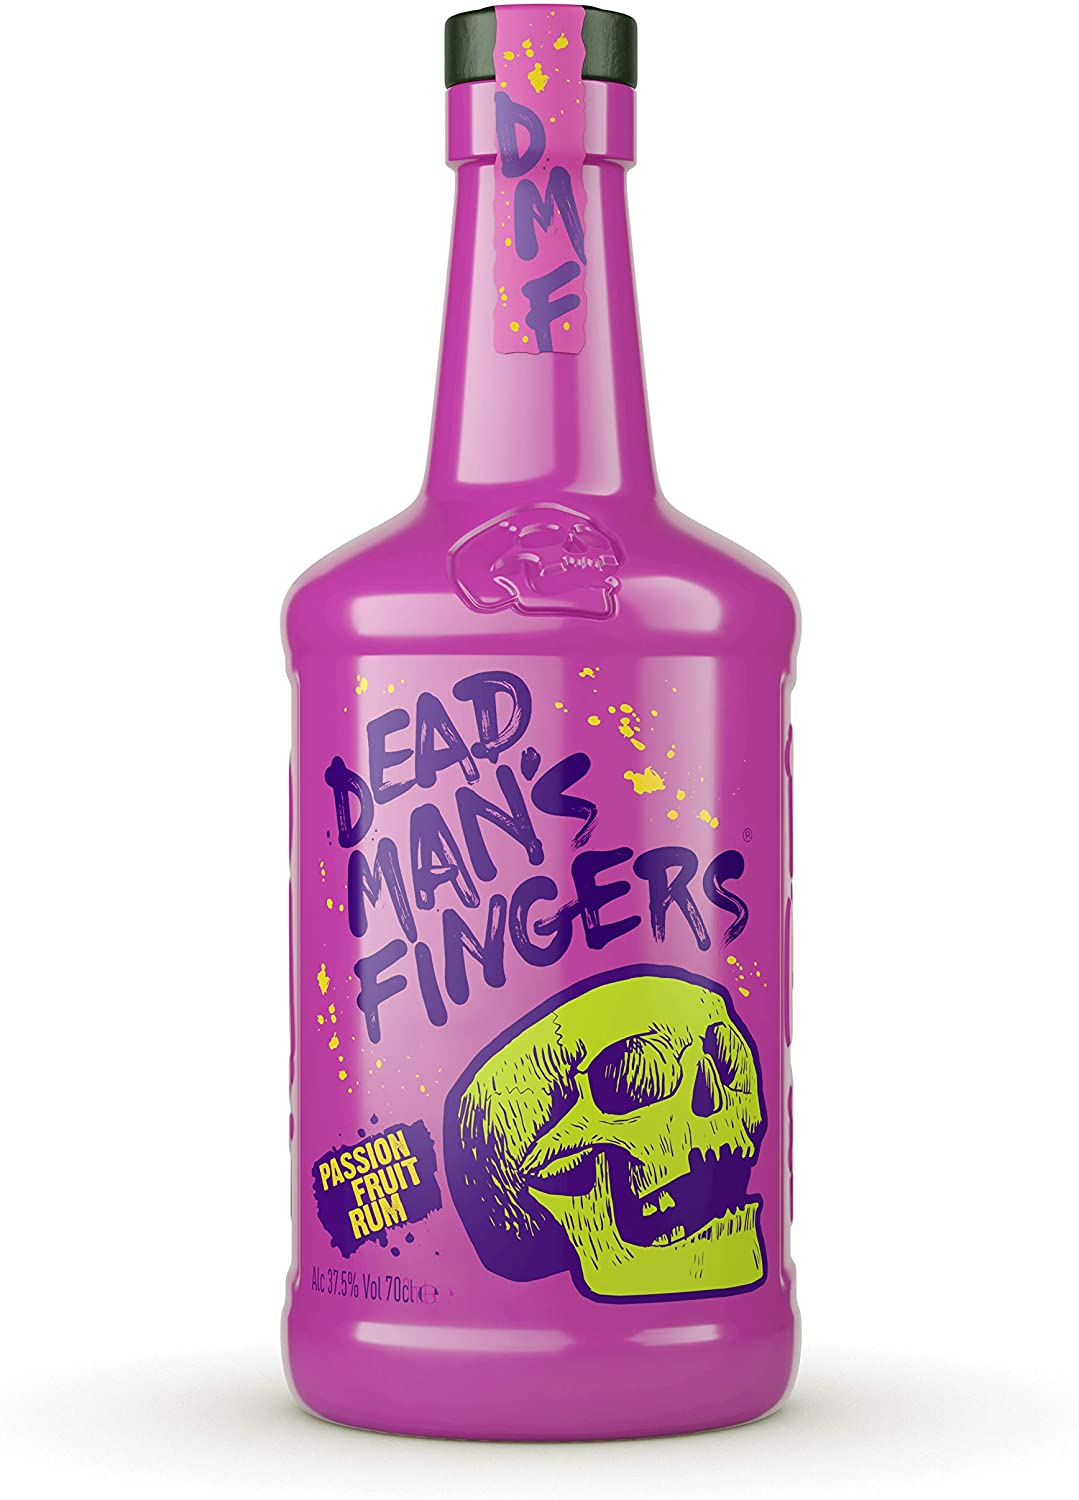 Dead Mans Fingers Passion Fruit Rum 70cl